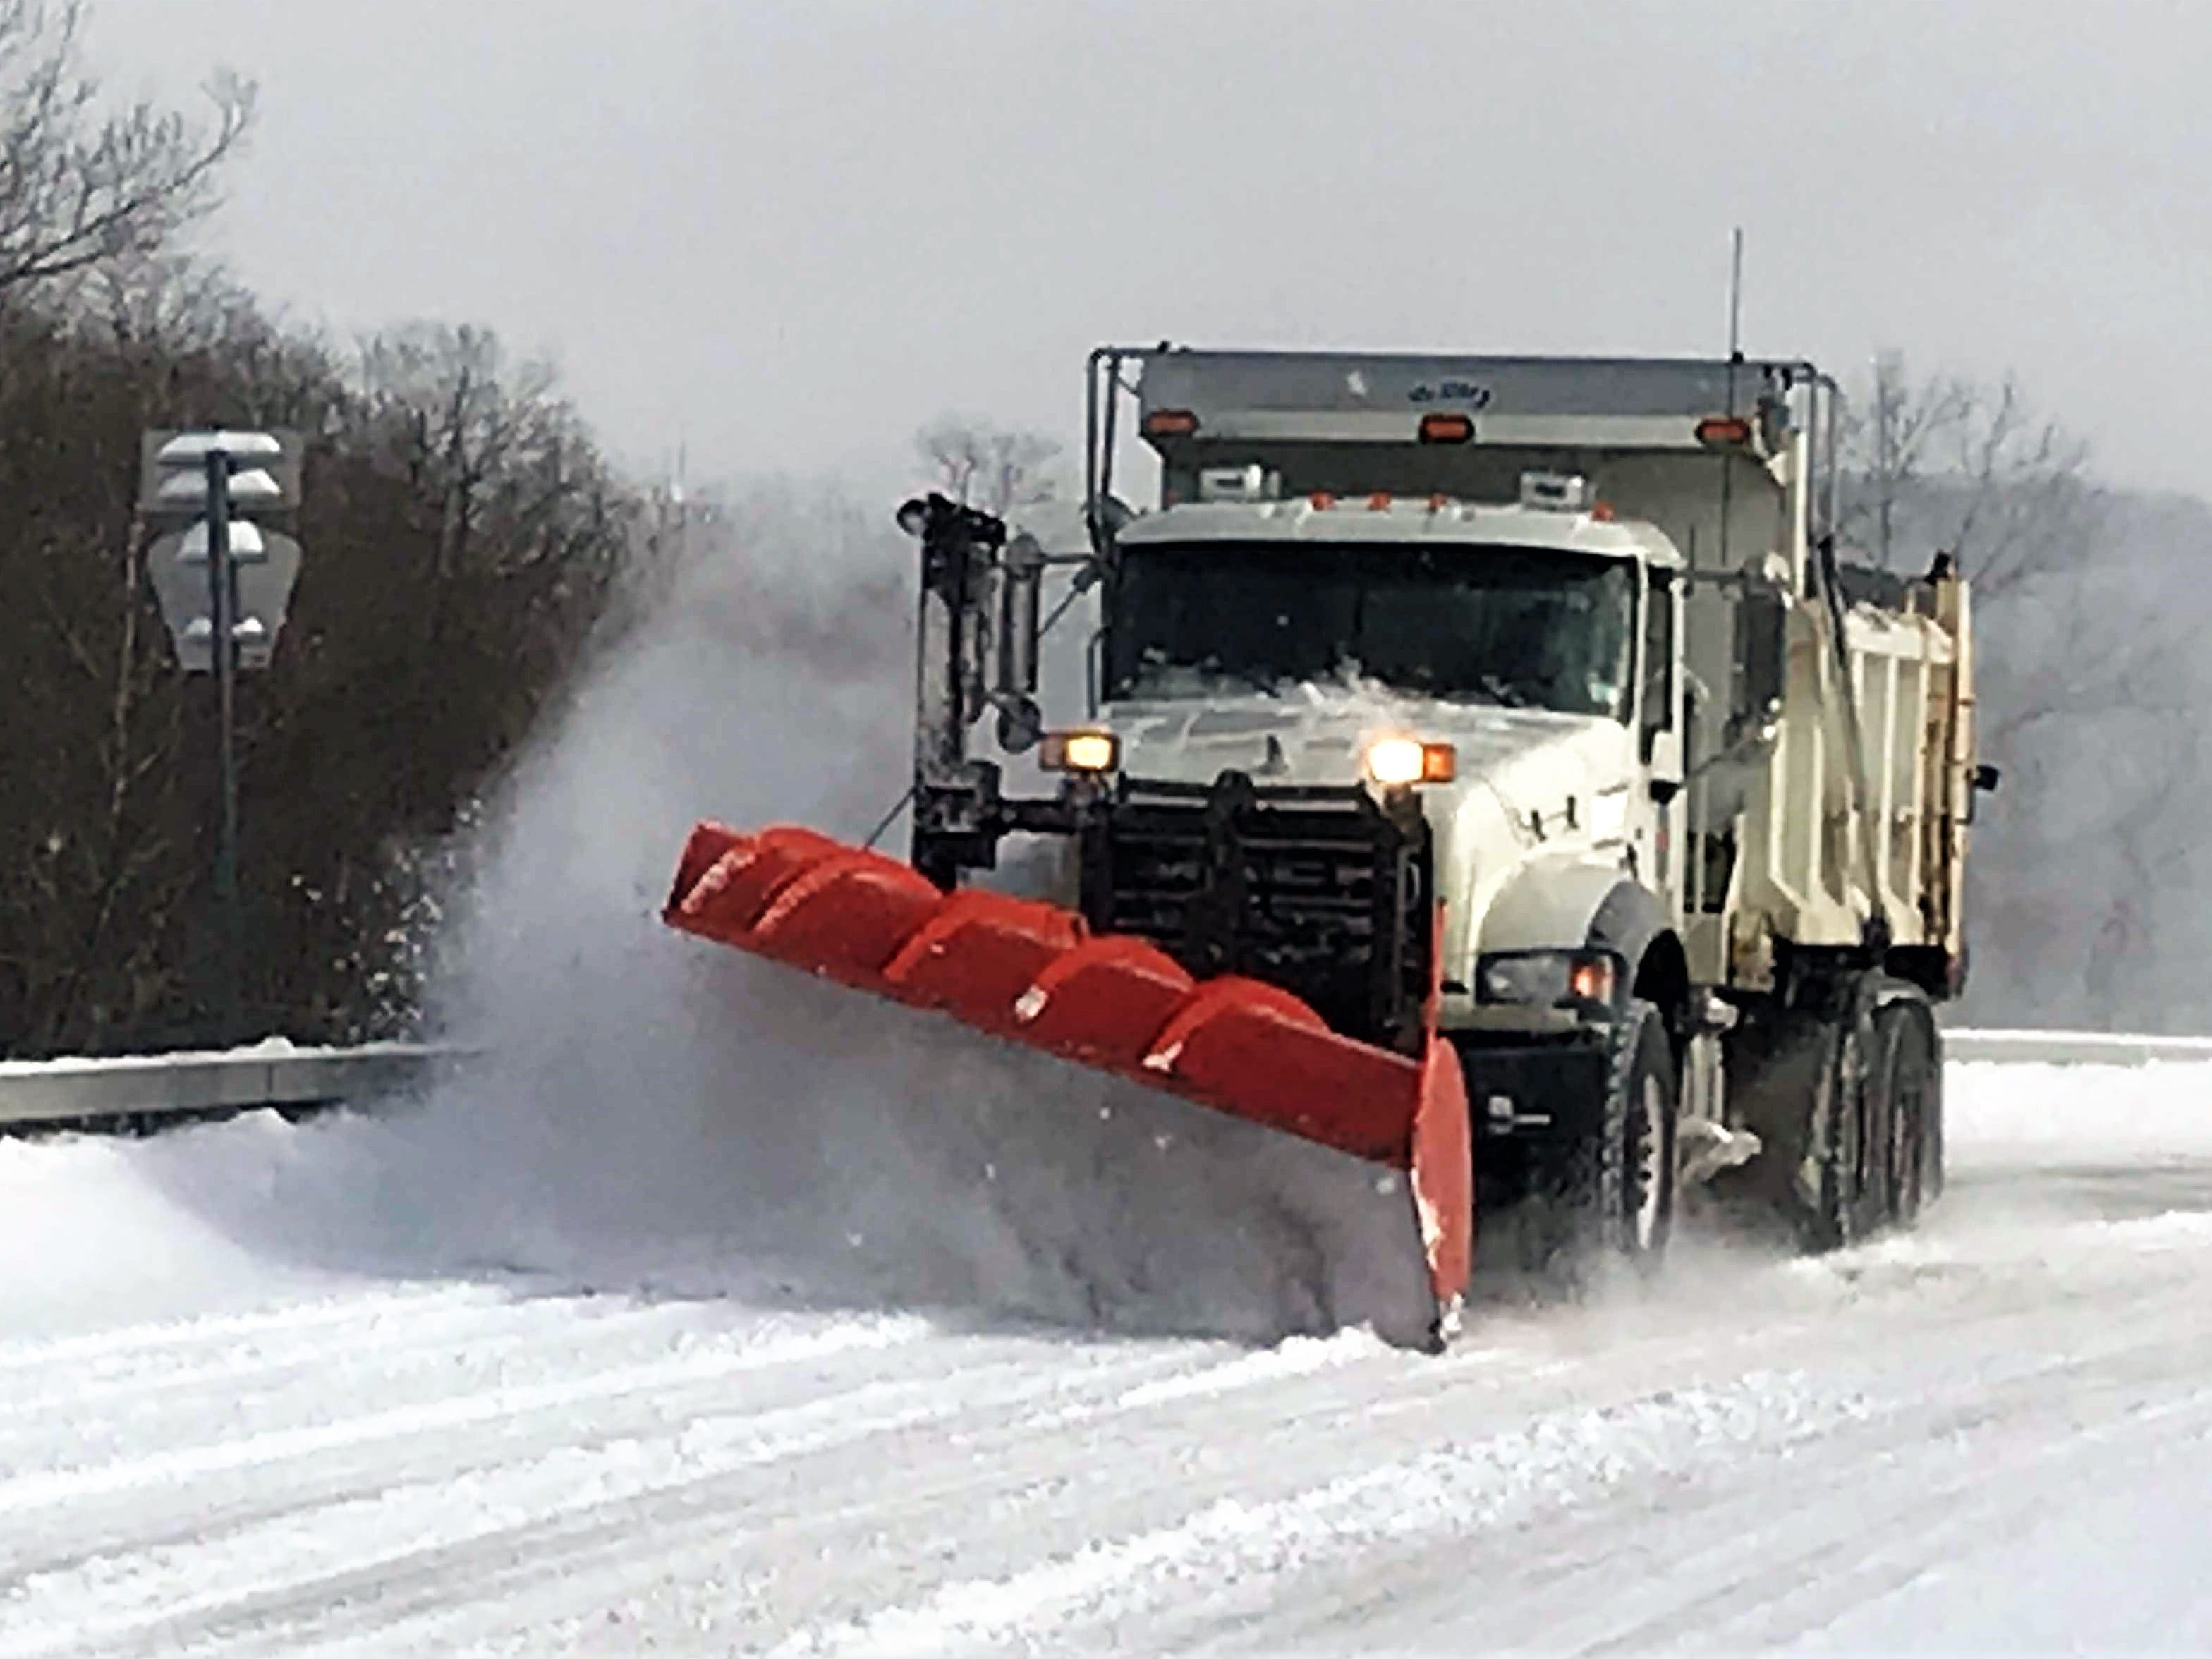 A Chemung County plow clears snow from county Route 60 in the Town of Chemung on Sunday morning.